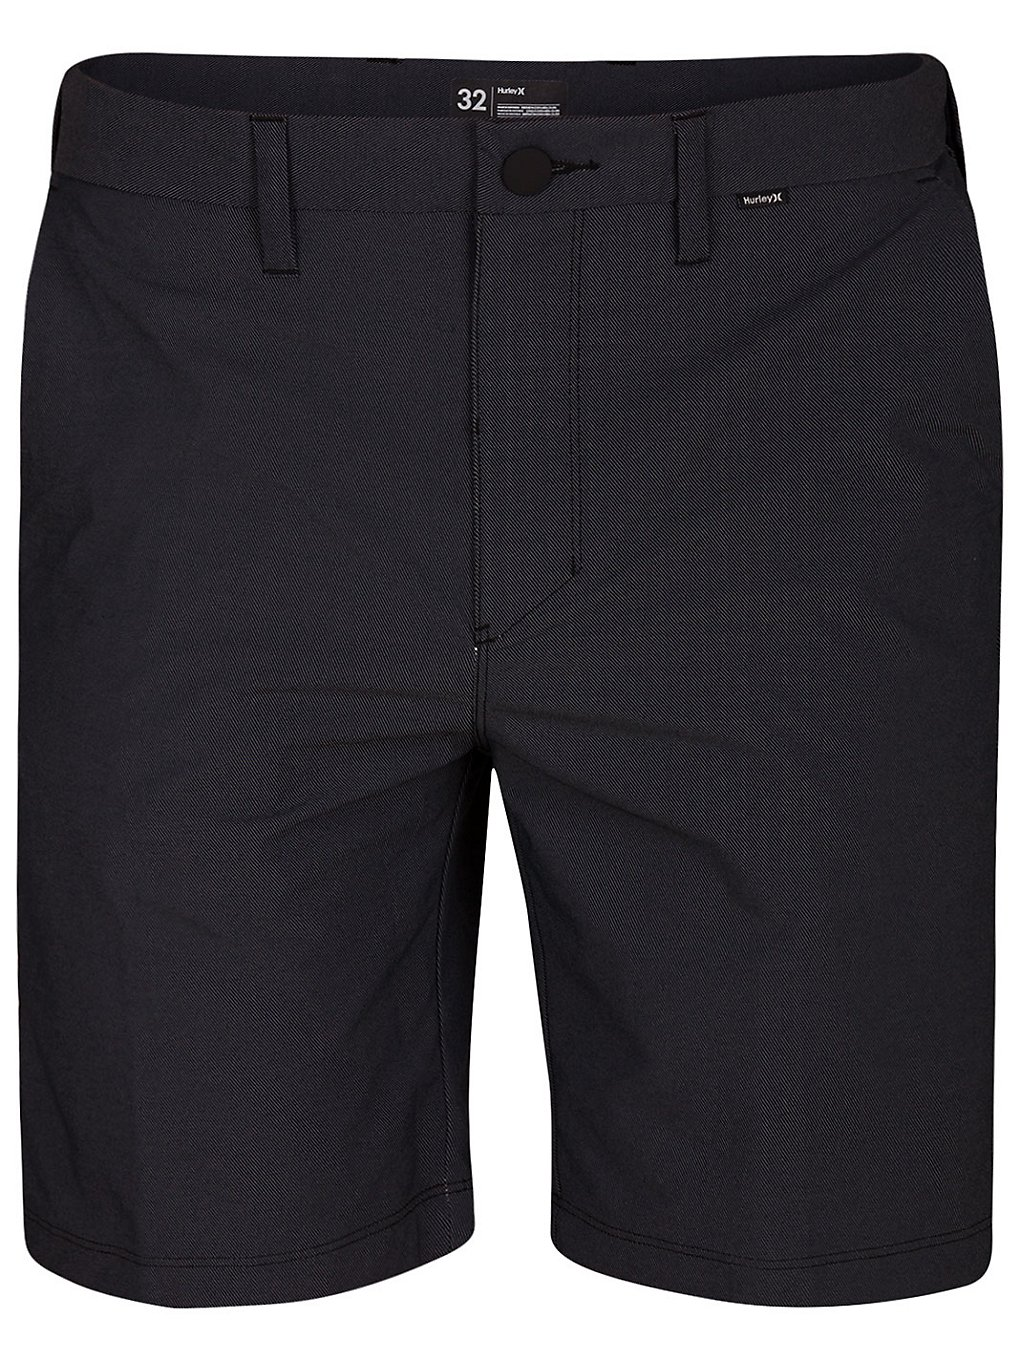 Hurley Dri-Fit Chino 19'' Shorts black Herren